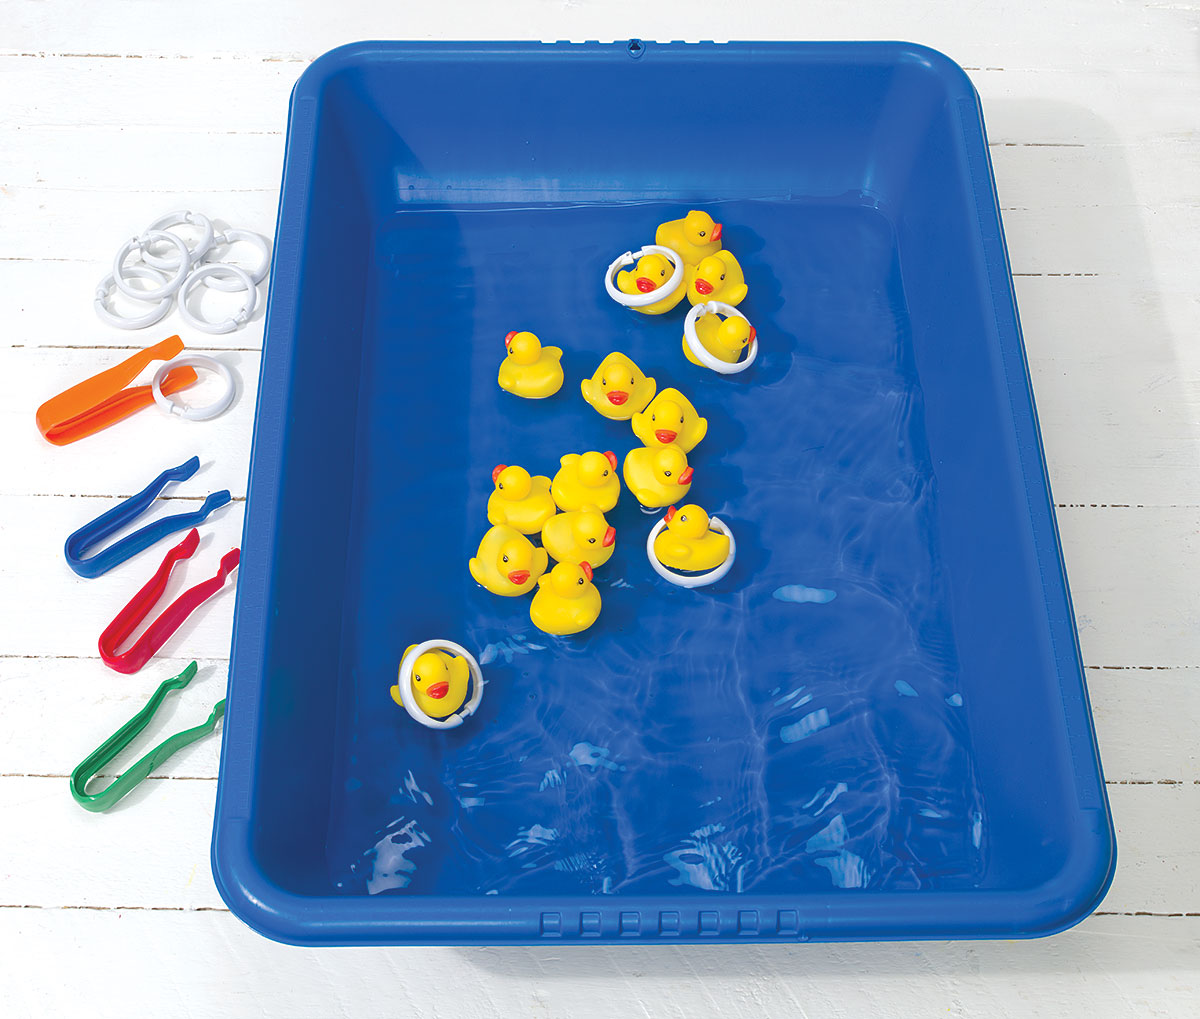 Counting Ducks STEM Activity